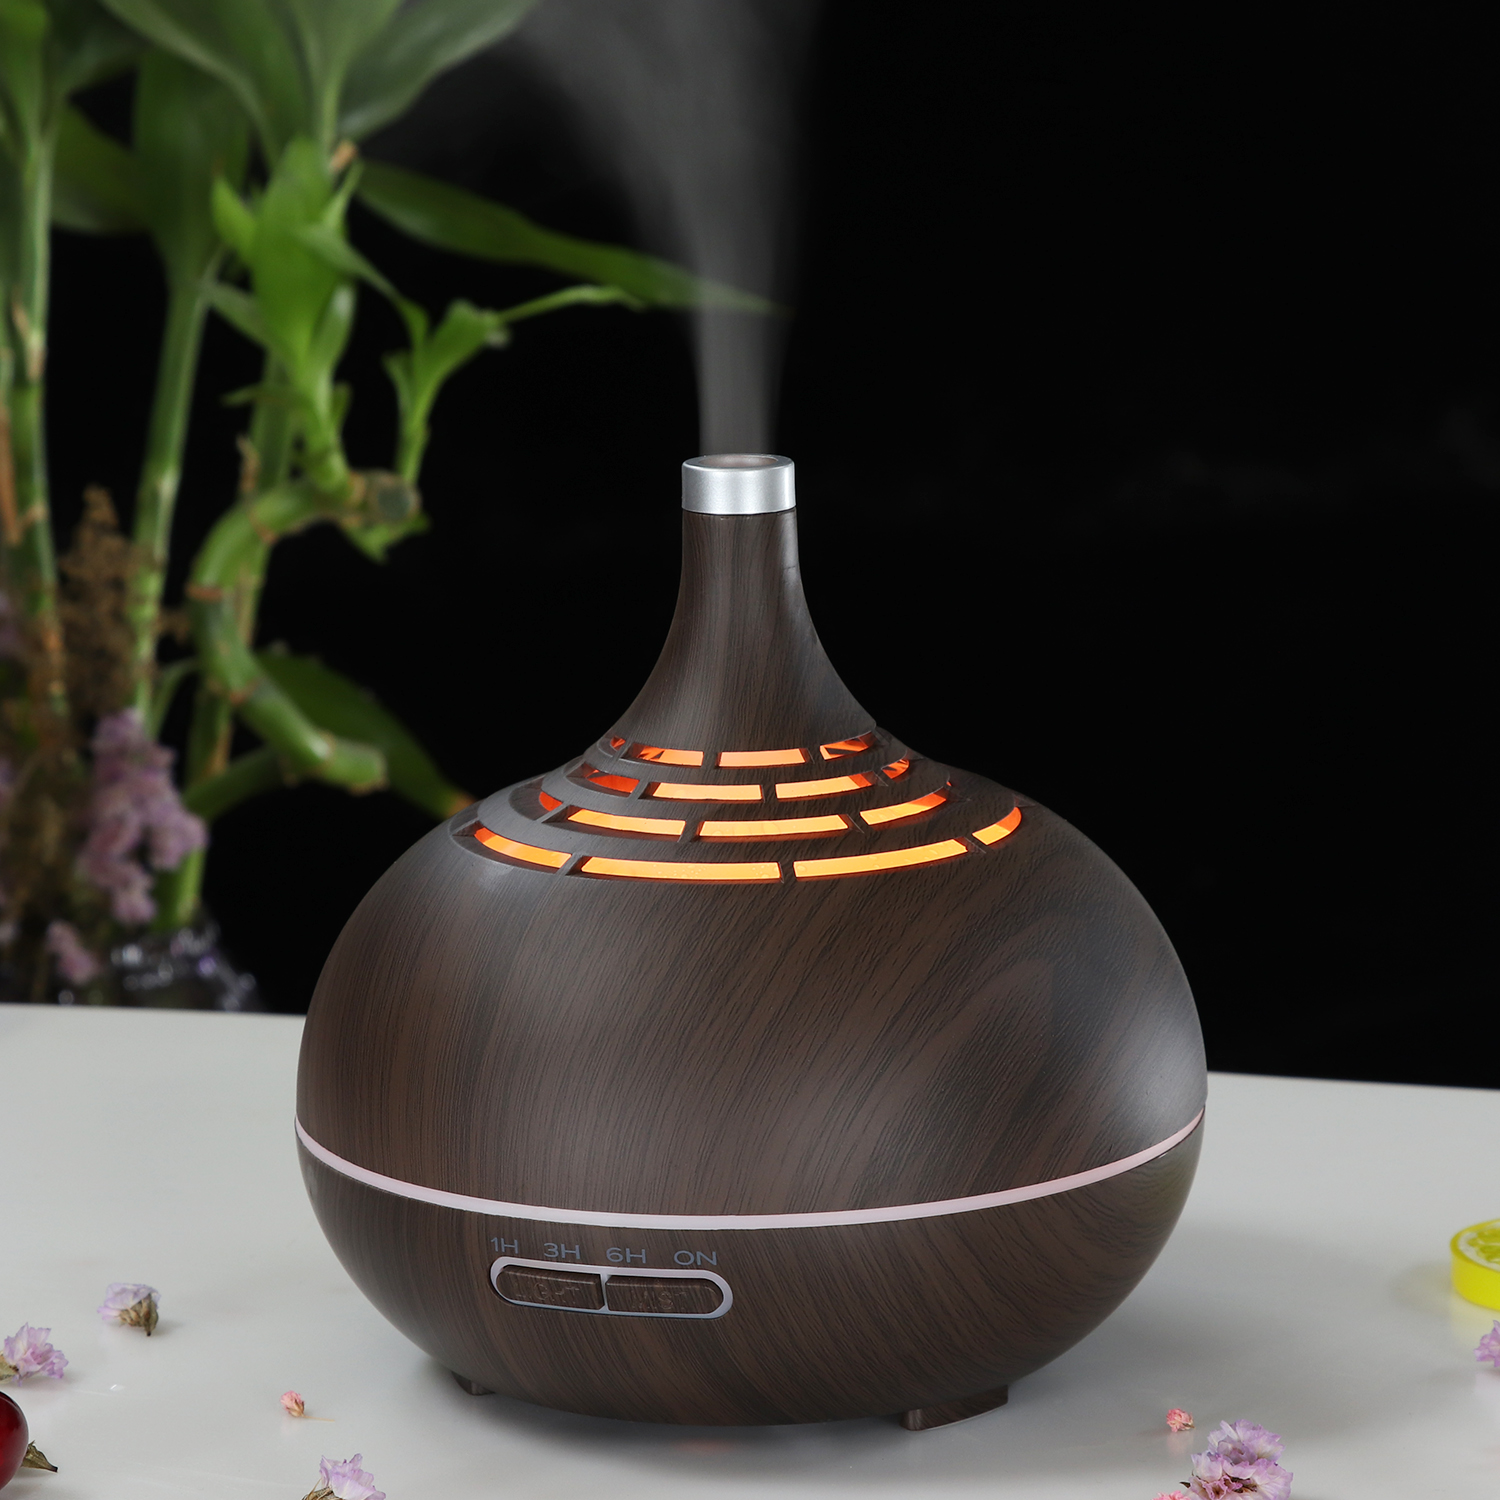 400ml Electric Ultrasonic Air Humidifier Aroma Essential Oil Diffuser Fogger LED Light Aroma Diffuser Mist Maker For Home